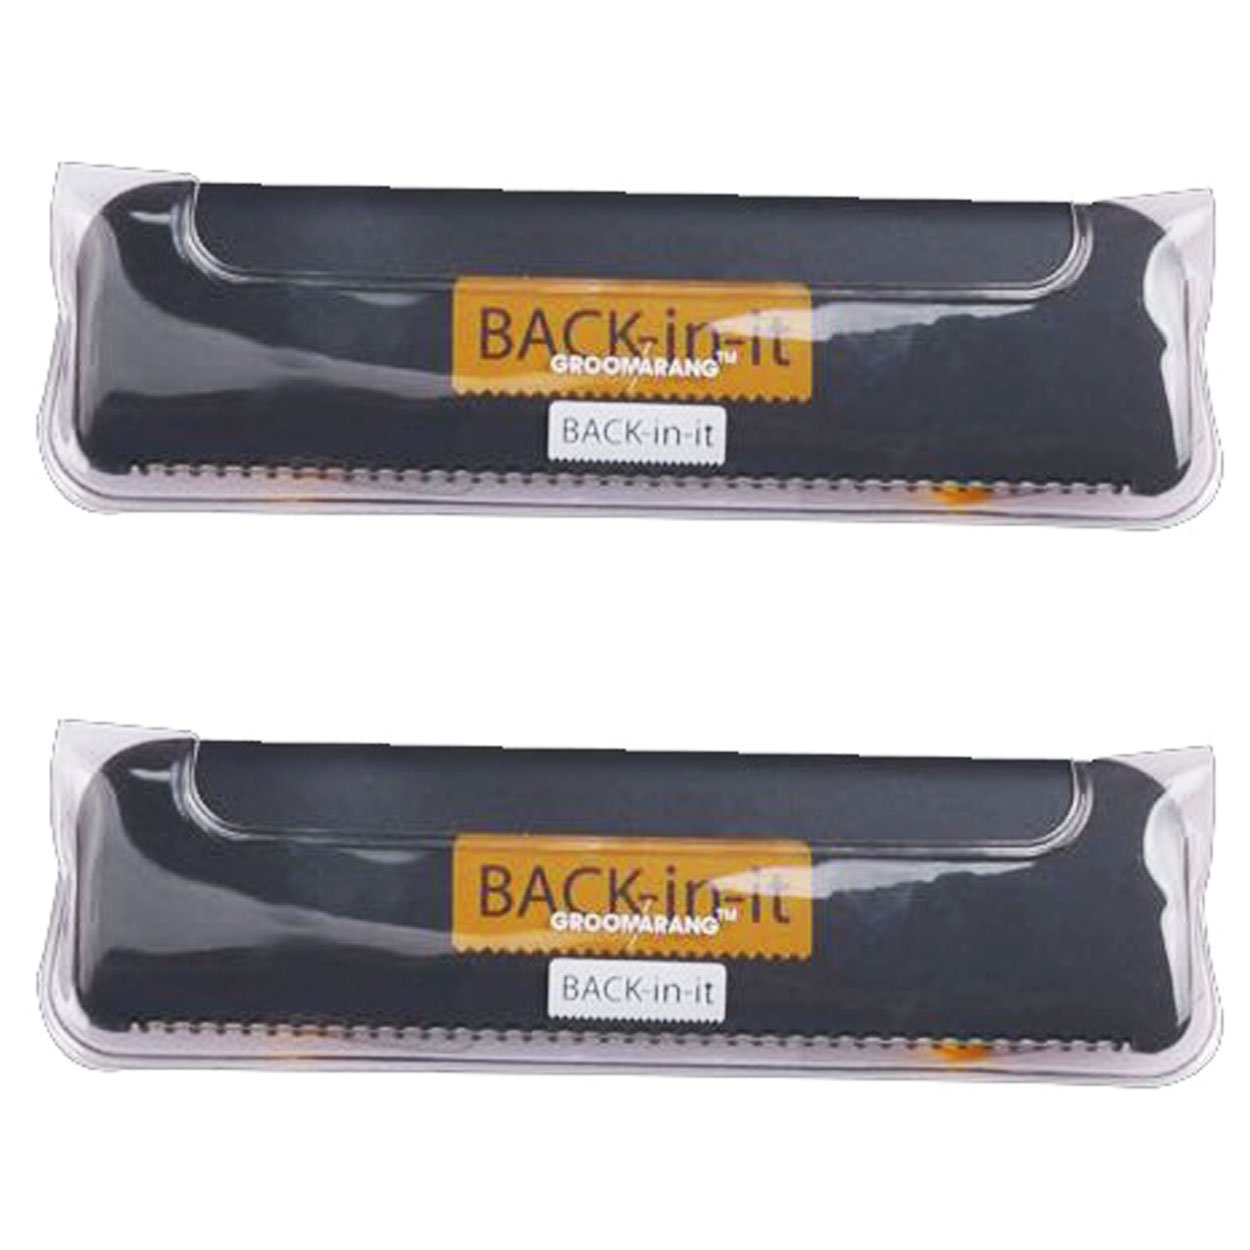 Groomarang Back-in-It Replacement 2 Blades